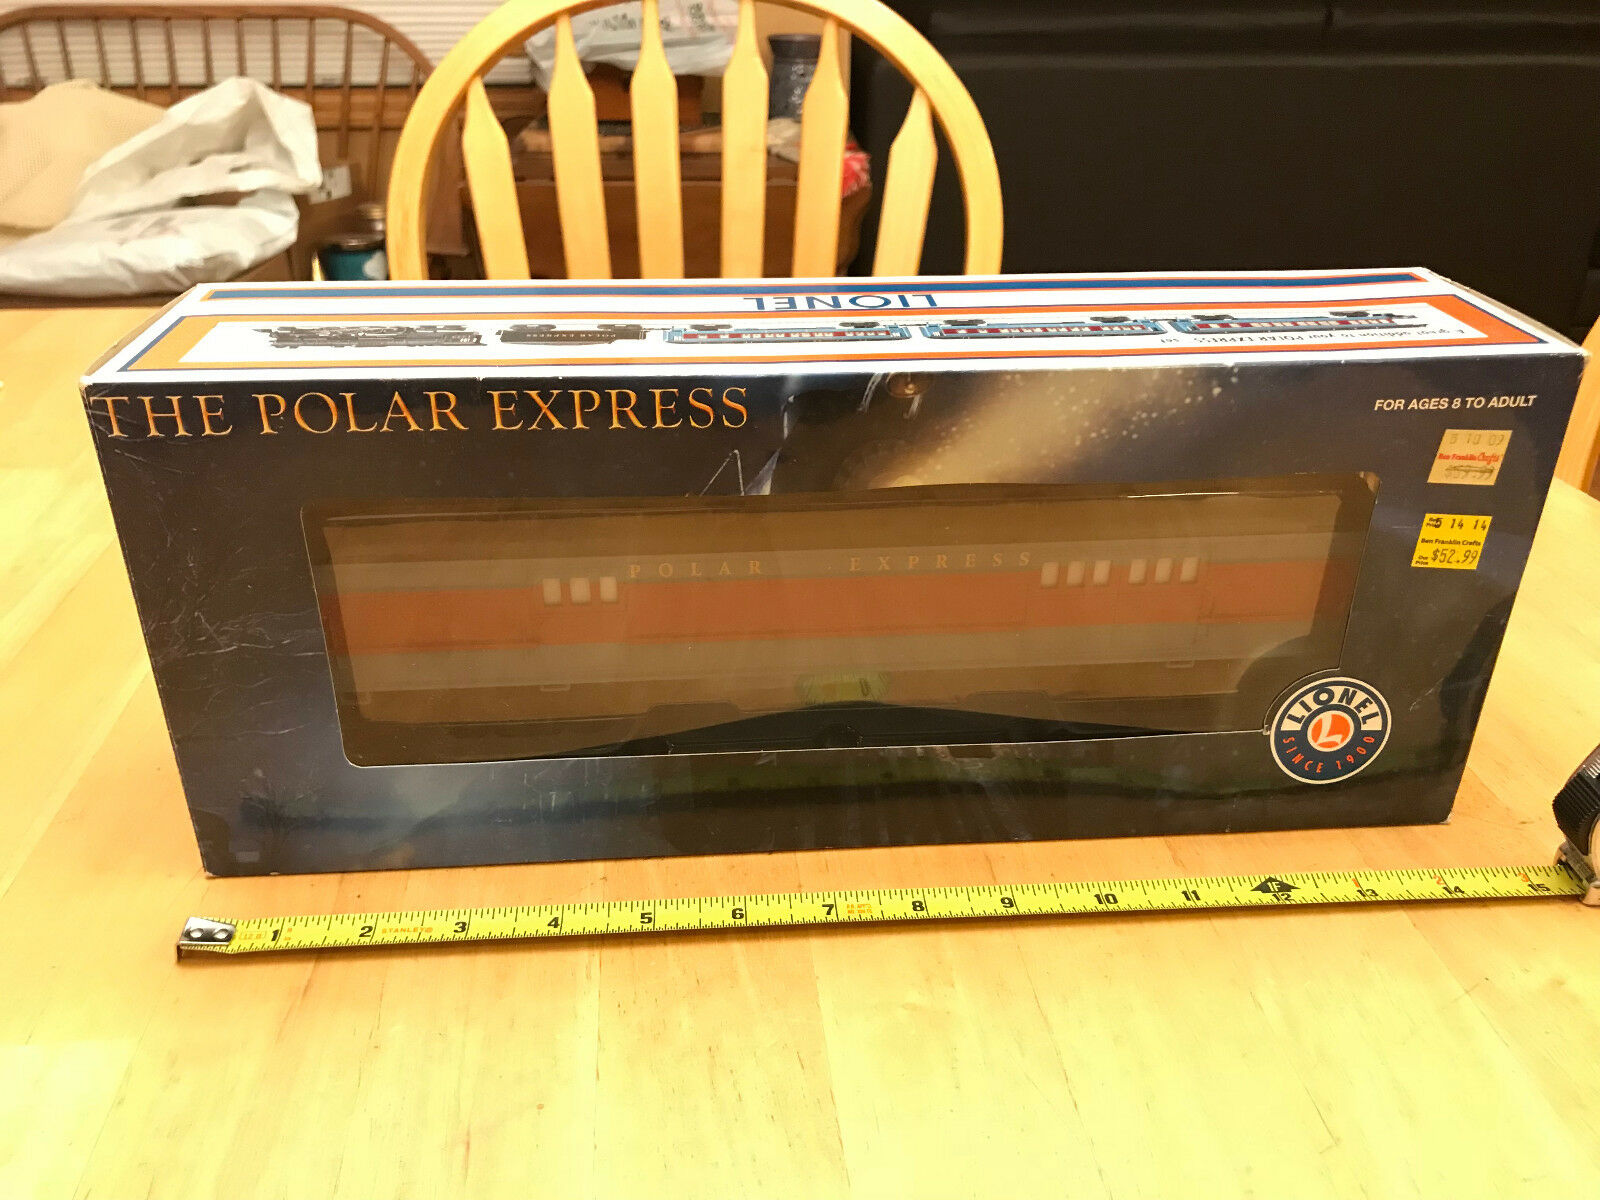 Lionel Train lighted Passenger auto 6-25135 The Polar Express Express Express borsagage auto LN NIP deaff0